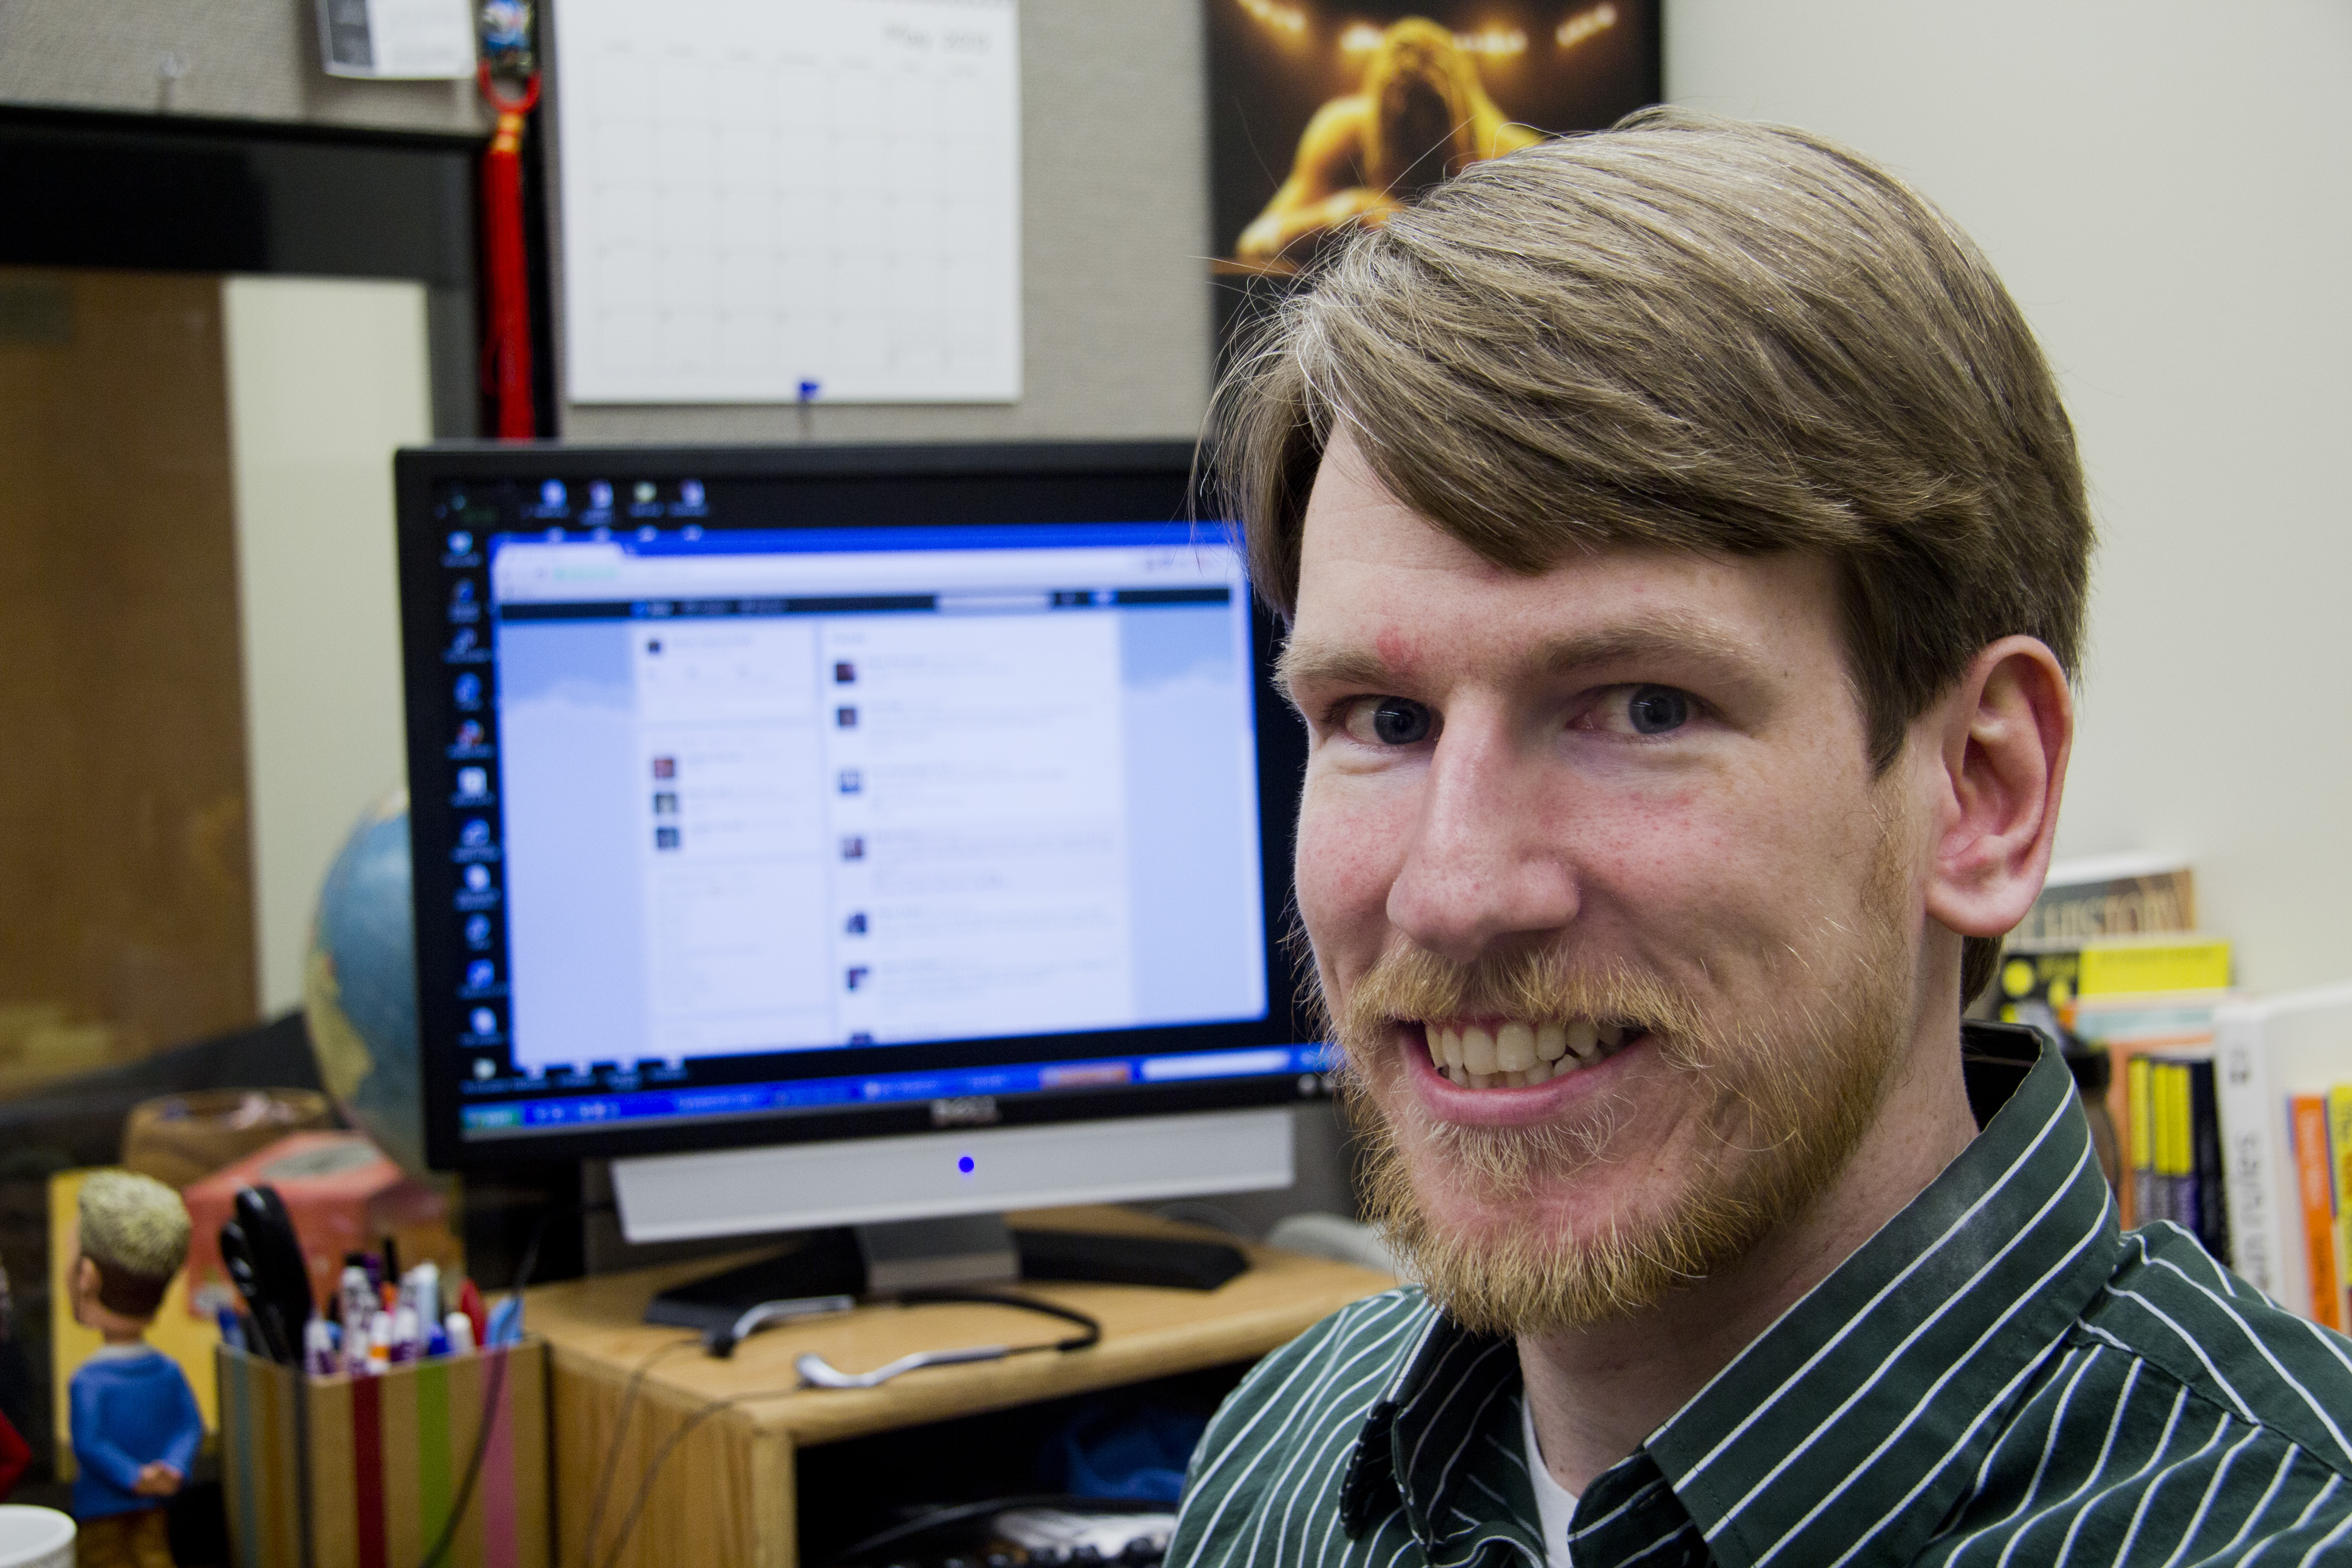 Shawn Doyle, a writing consultant at Cornell College, was named one of the 50 best writing teachers on Twitter.